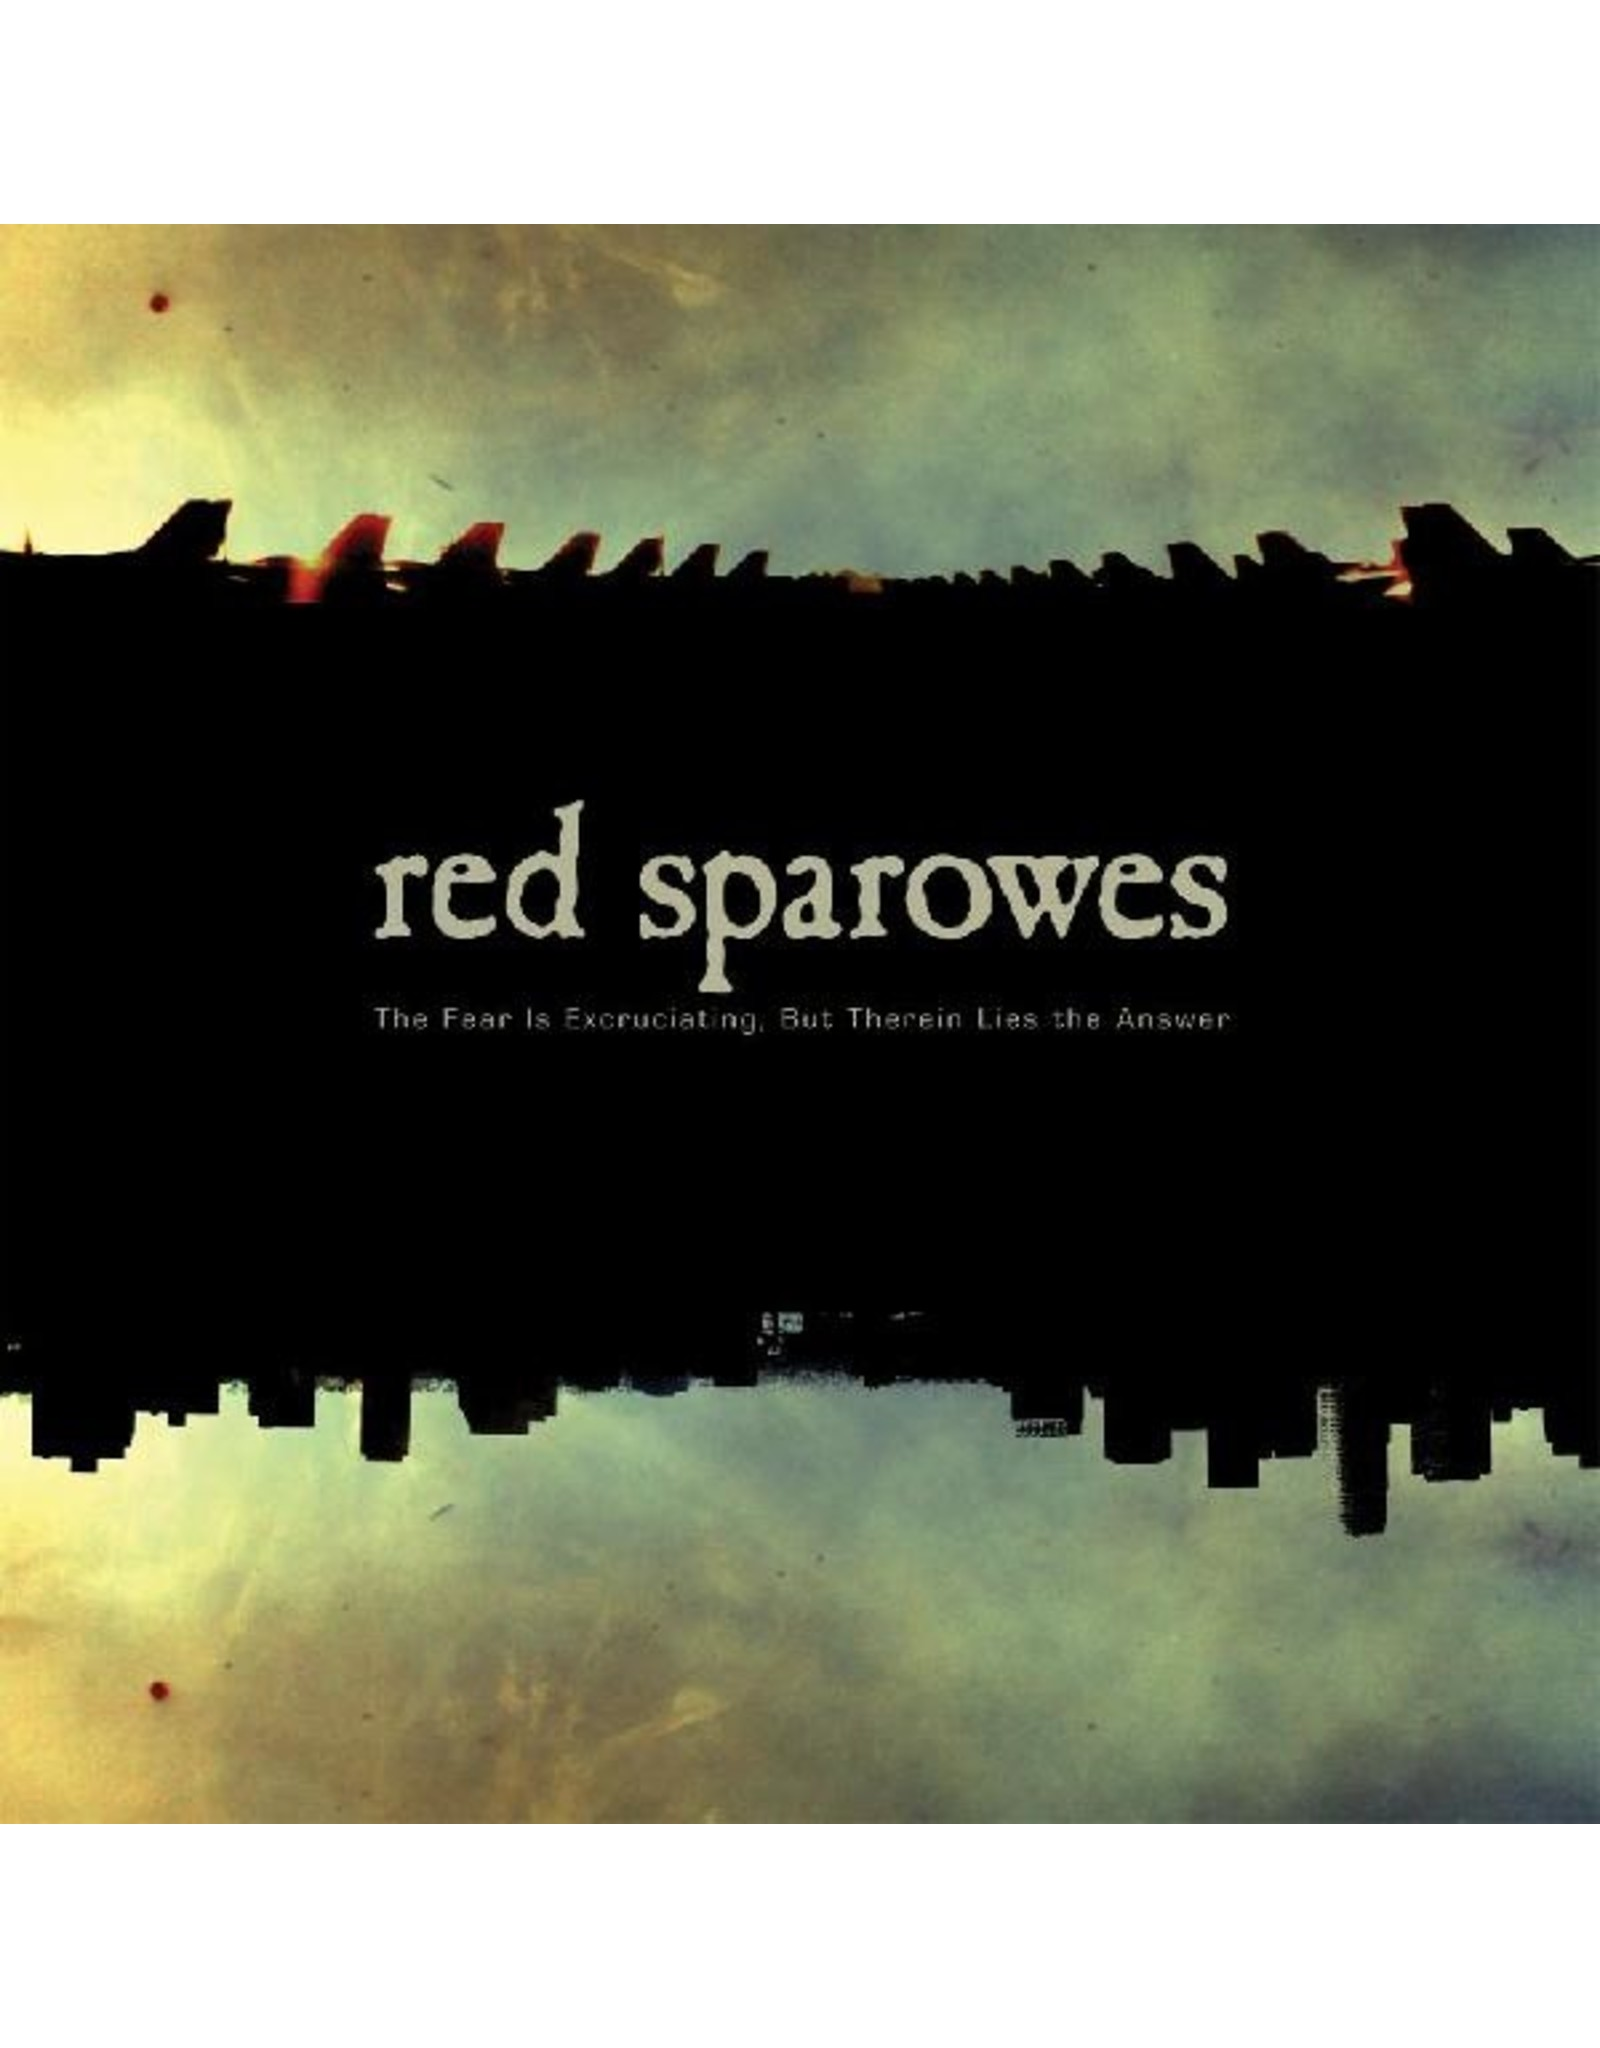 New Vinyl Red Sparowes - The Fear Is Excruciating, But Therein Lies The Answer LP